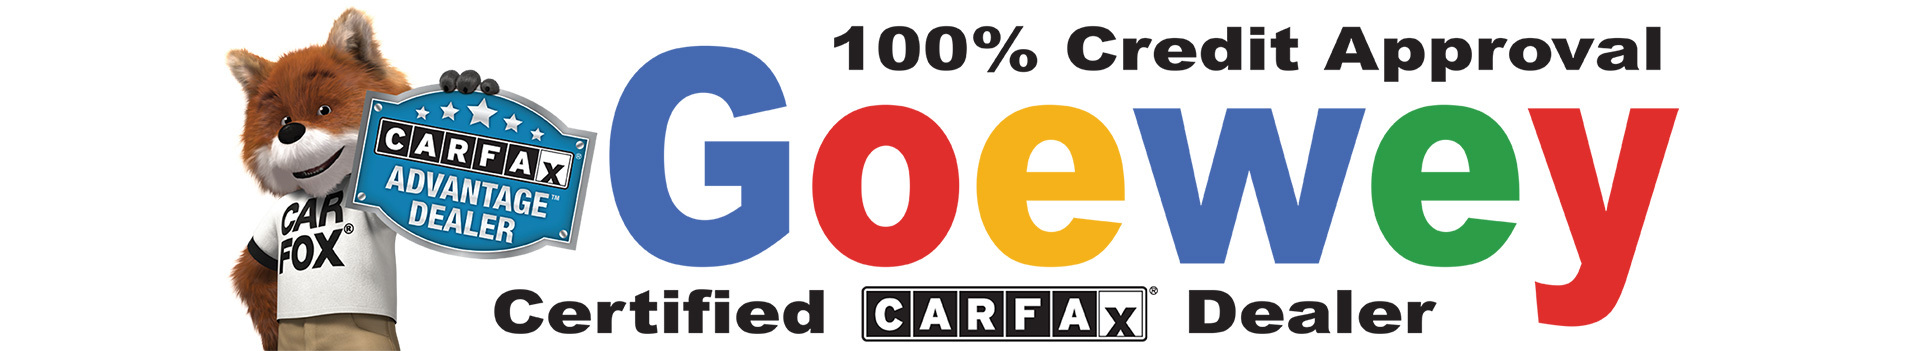 Team Goewey is CARFAX Approved!